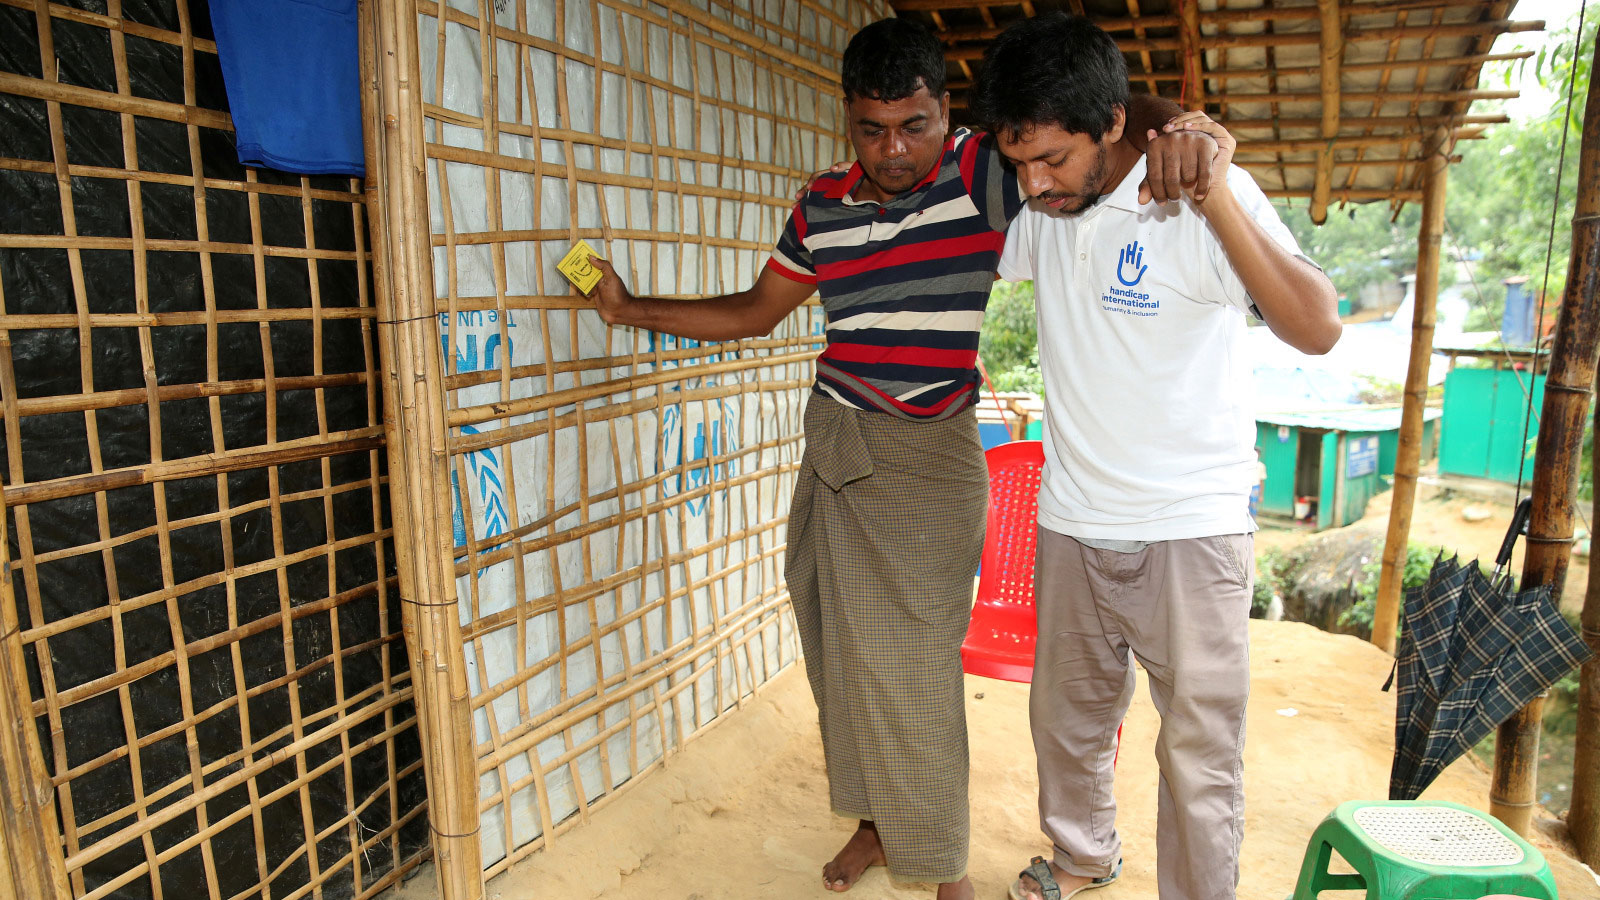 HI physical therapist supporting a Rohingya refugee in Bangladesh